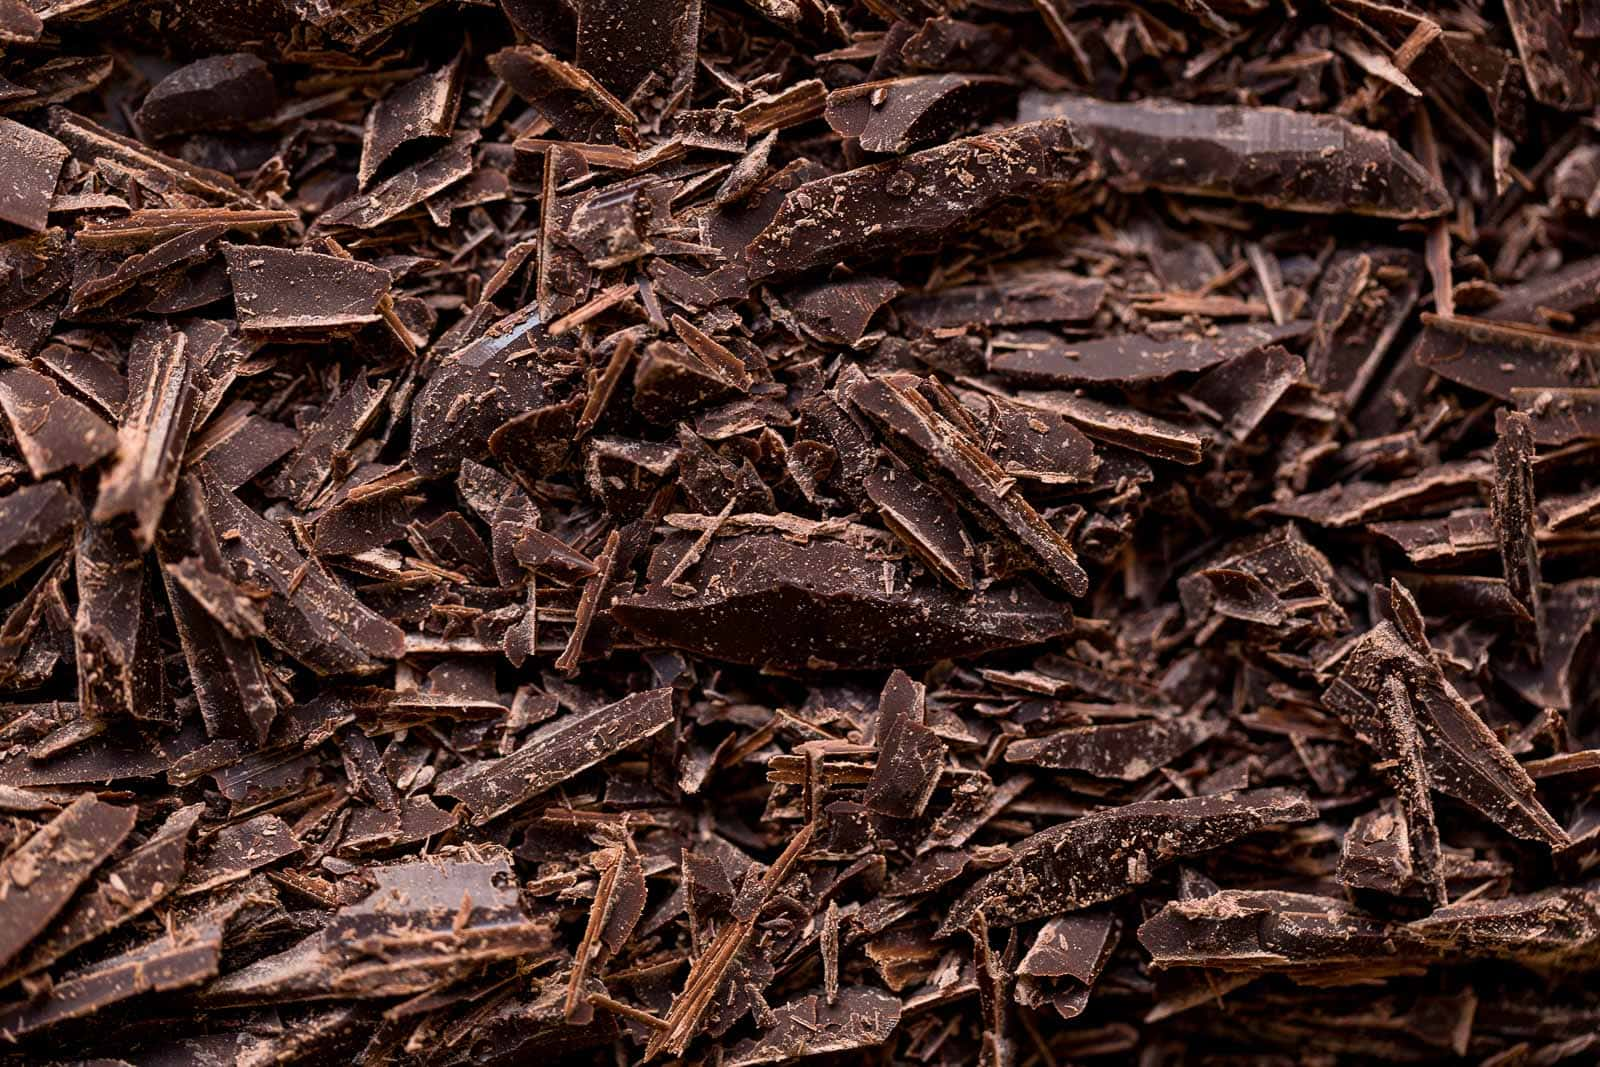 Chopped chocolate for baking